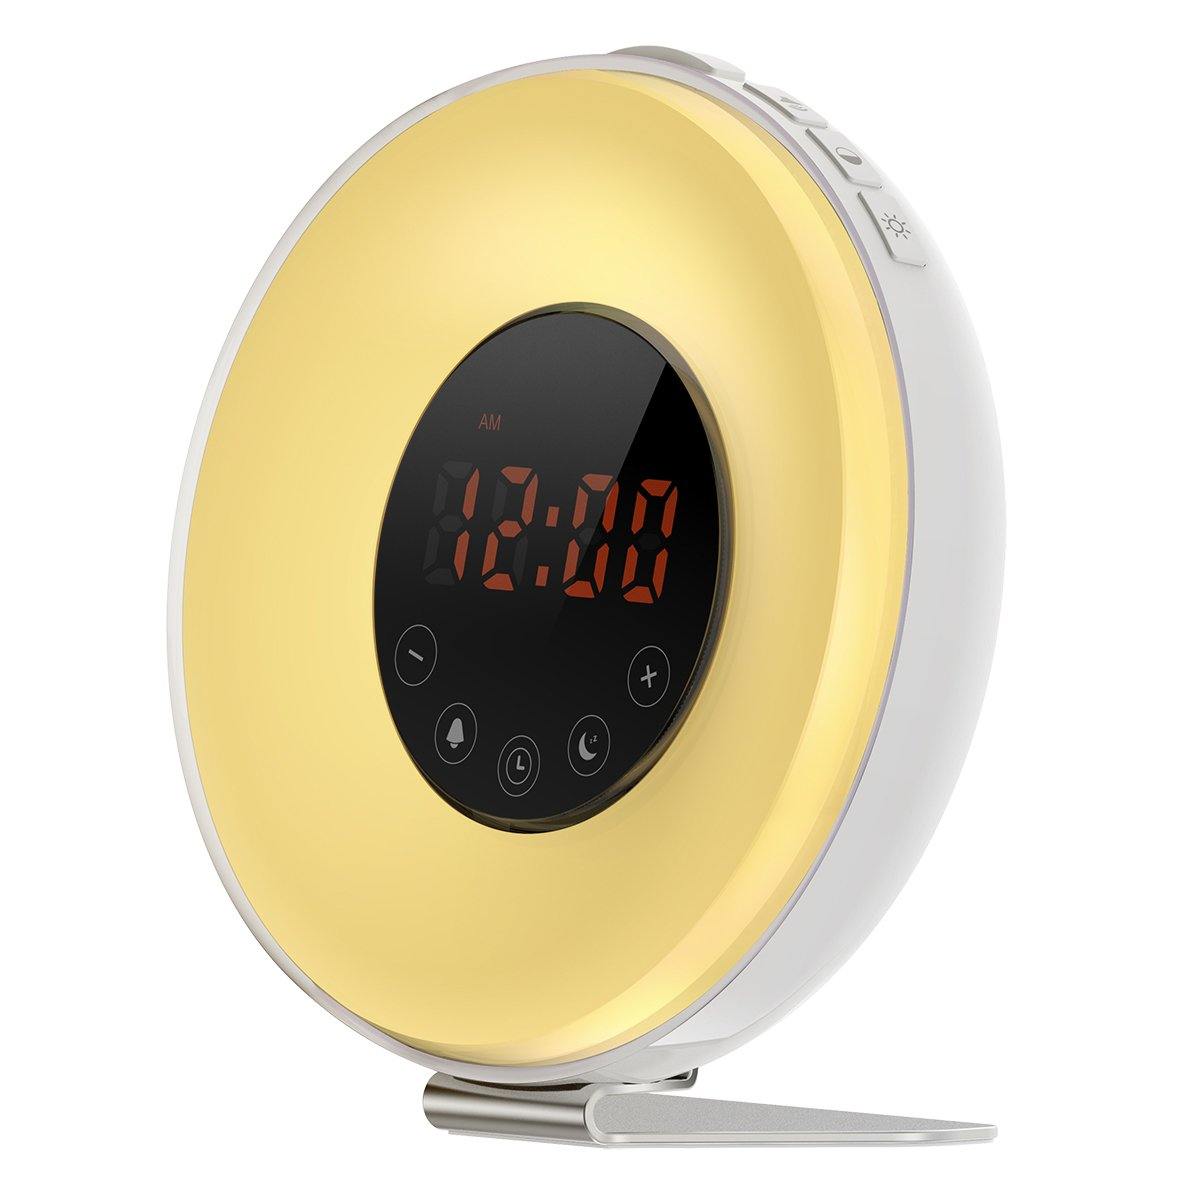 Criacr Wake-Up Light, (2 Sound, FM Radio, Snooze Function) Sunrise Sunset Simulation Alarm Clock, Multi Light Modes, Touch Control Night Light, Easy to Set Up for Bedroom, Playroom, (Yellow)